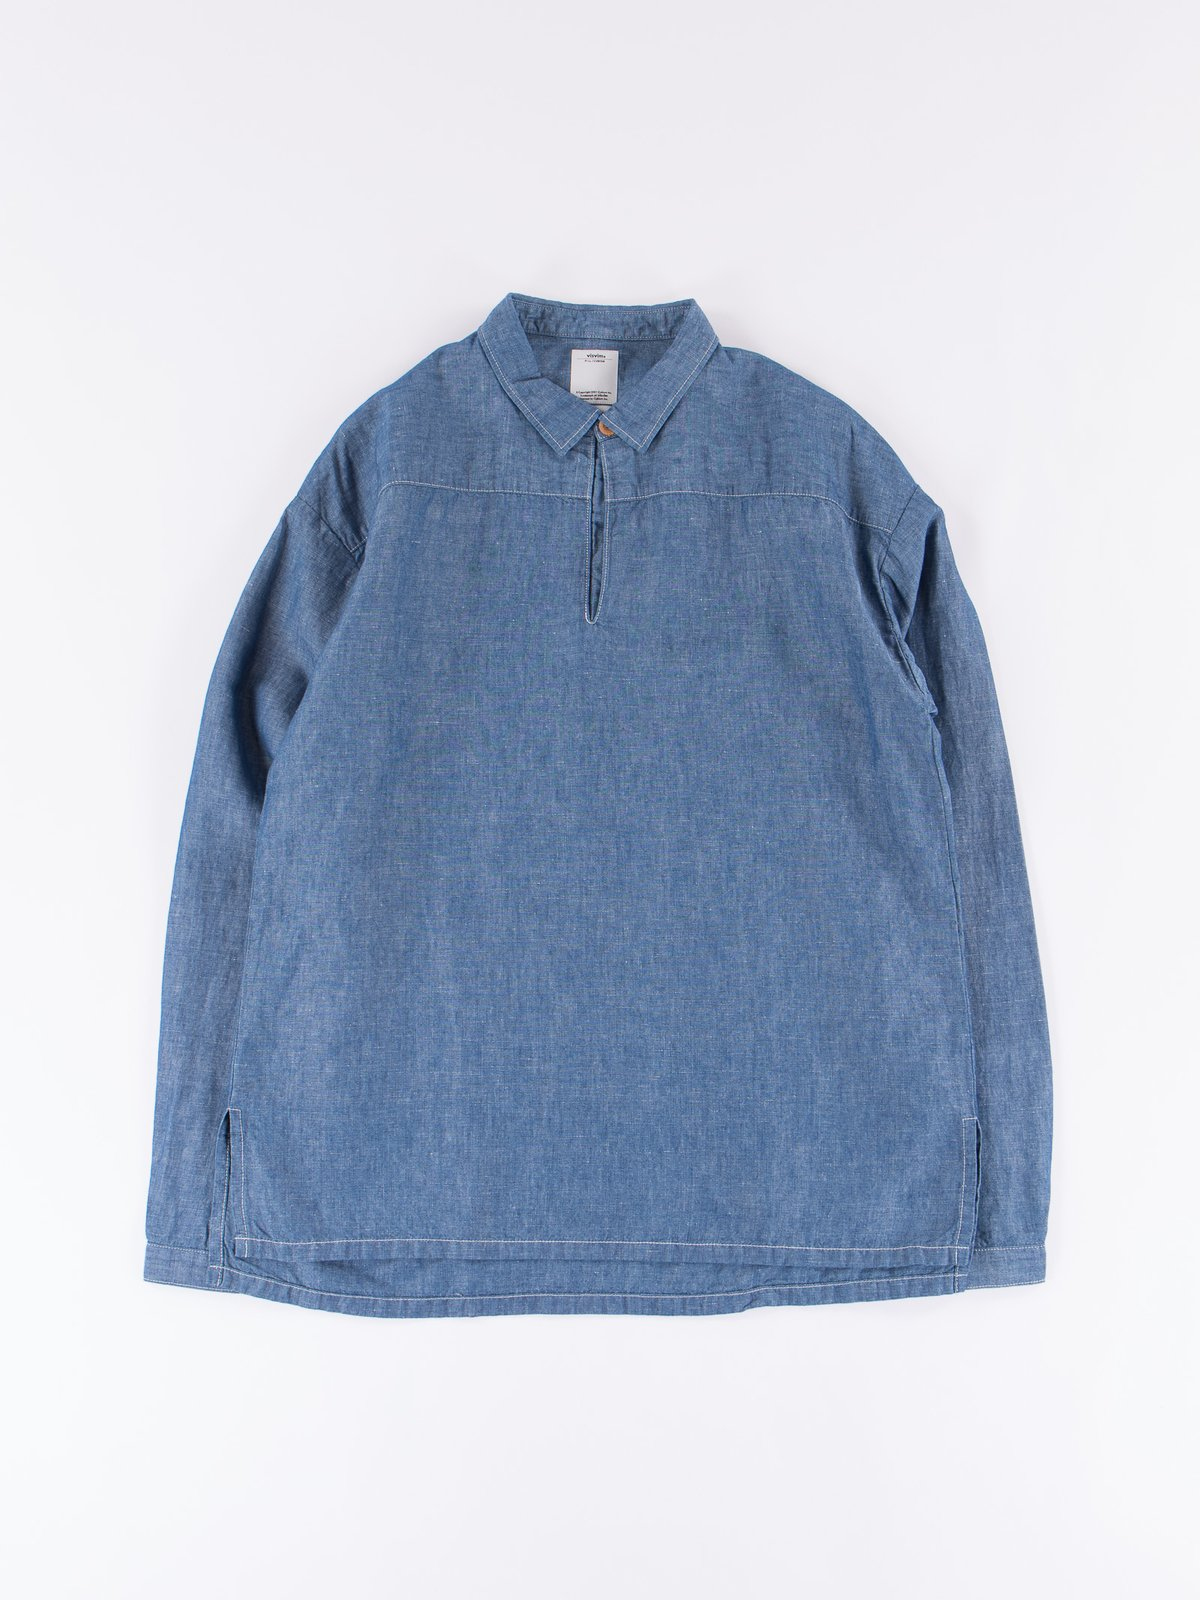 Blue Chambray Kerchief Tunic Shirt - Image 1